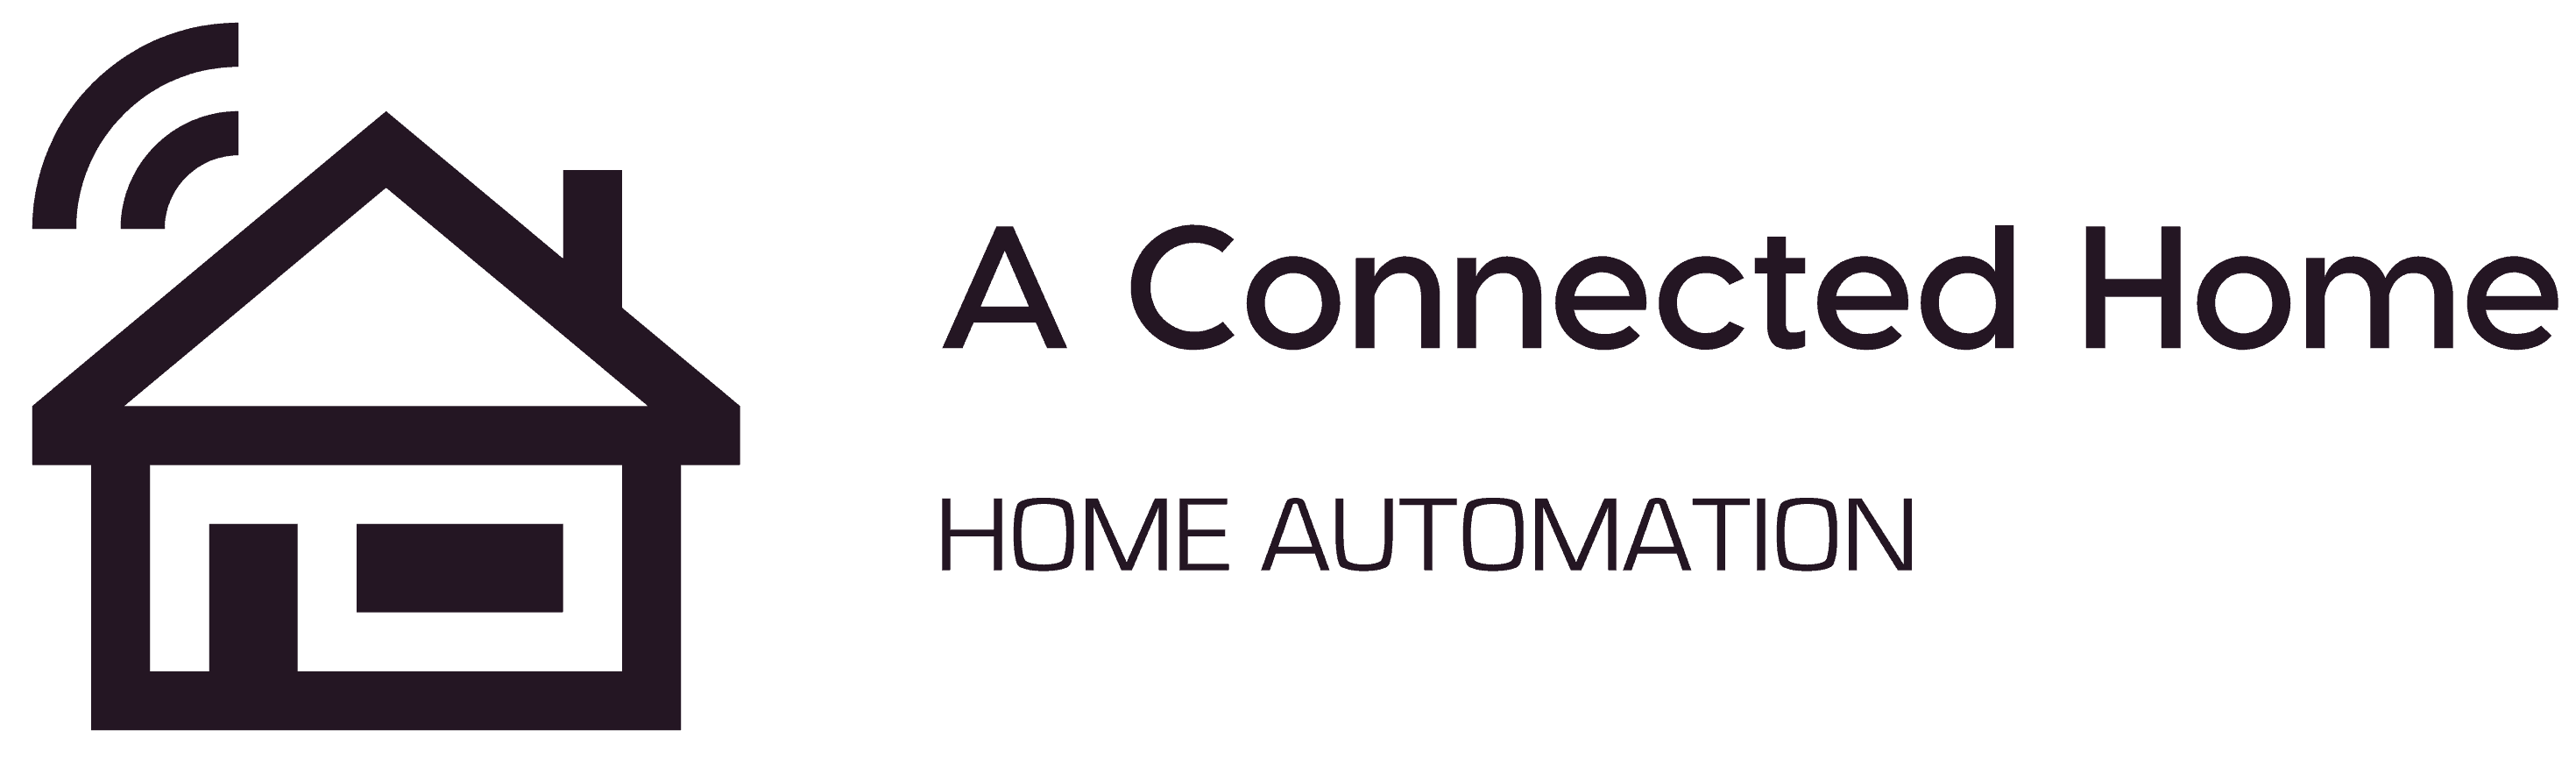 5 Ways to Use Voice Controlled Home Automation - A Connected